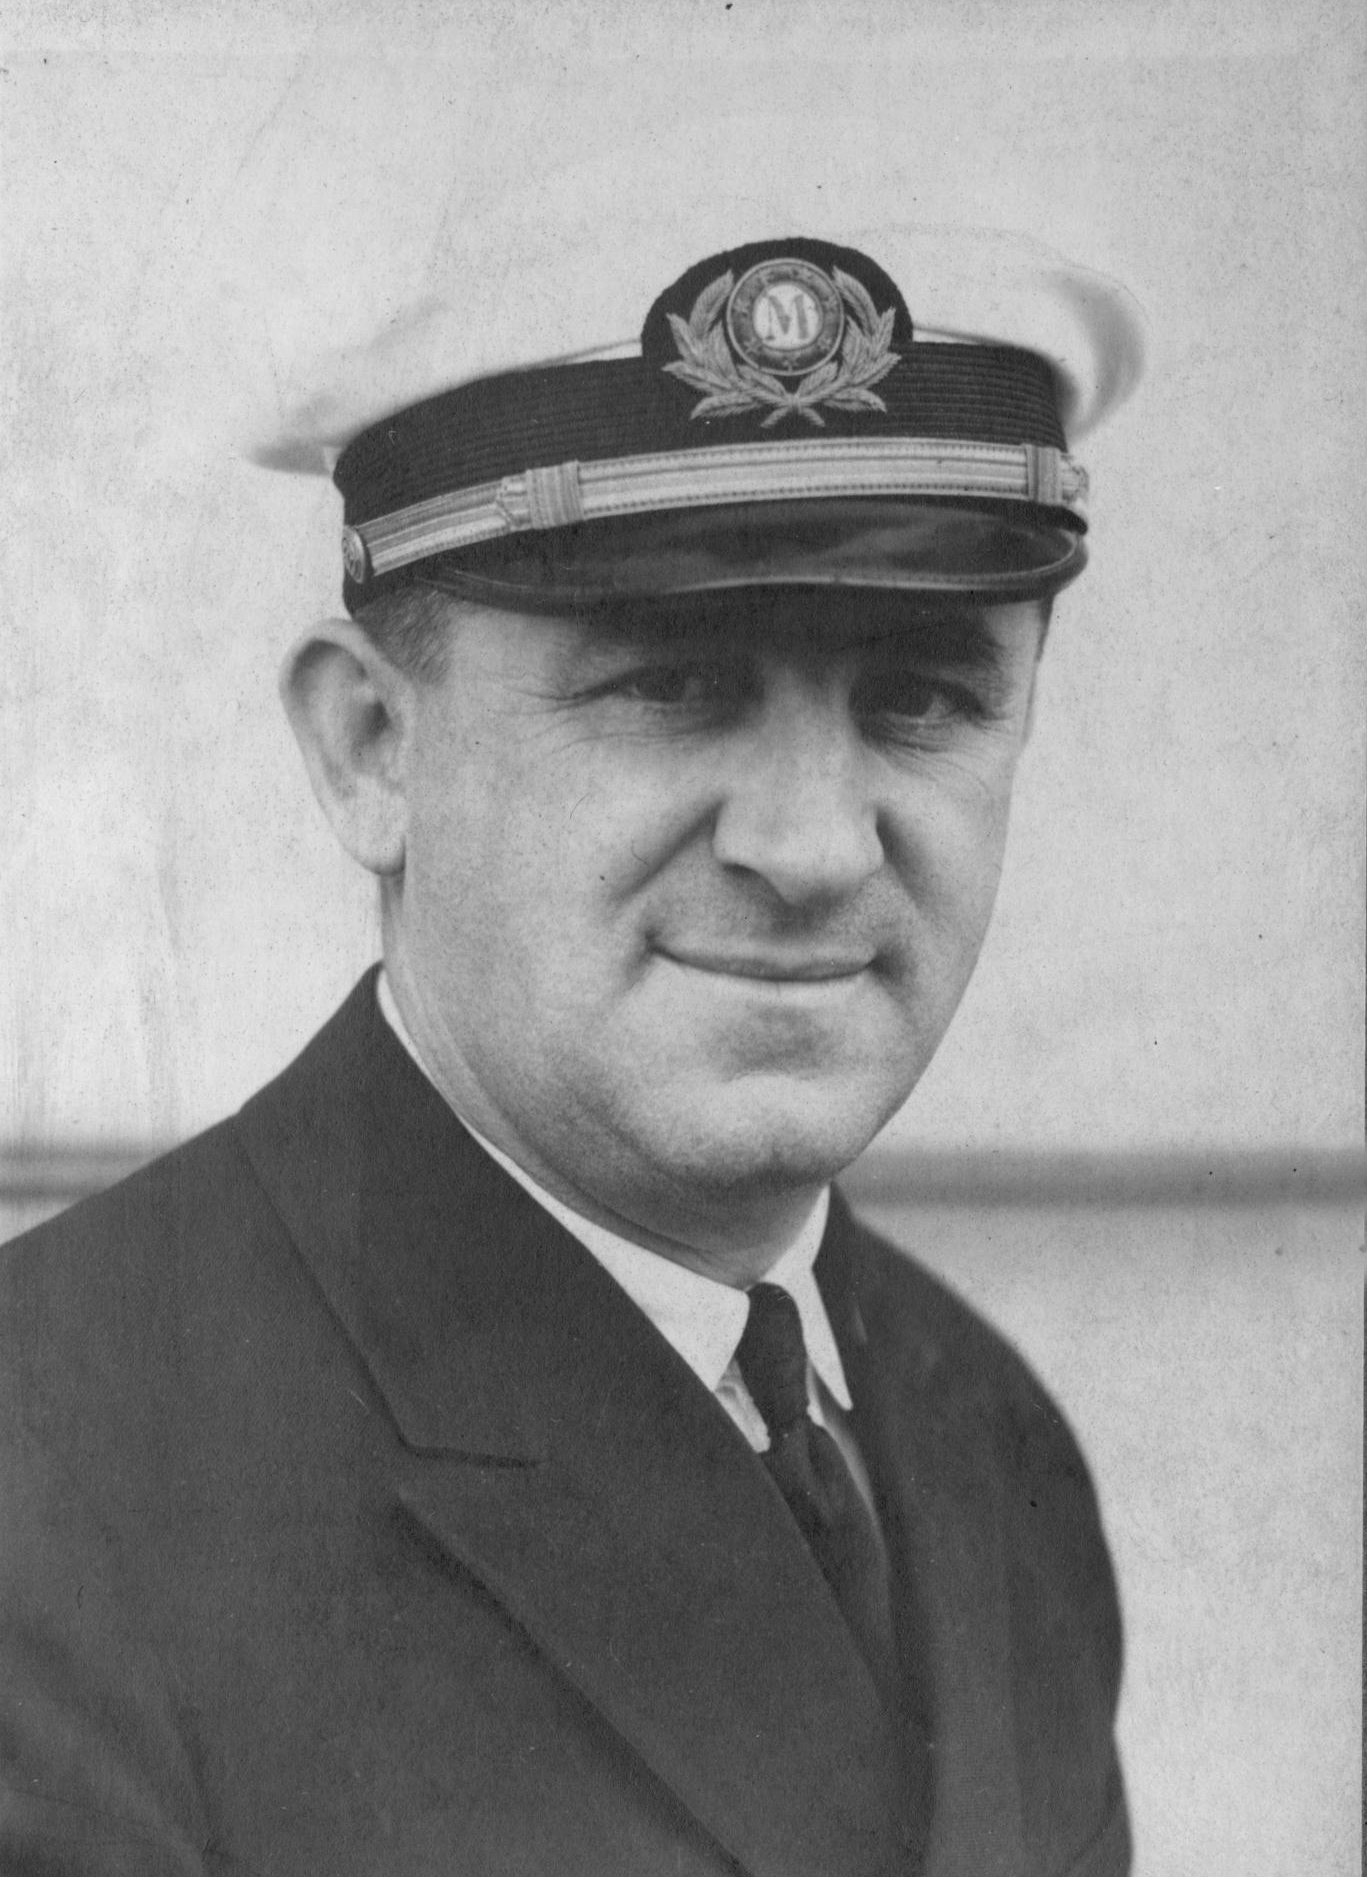 Chief Eng. R.C. Dwyer